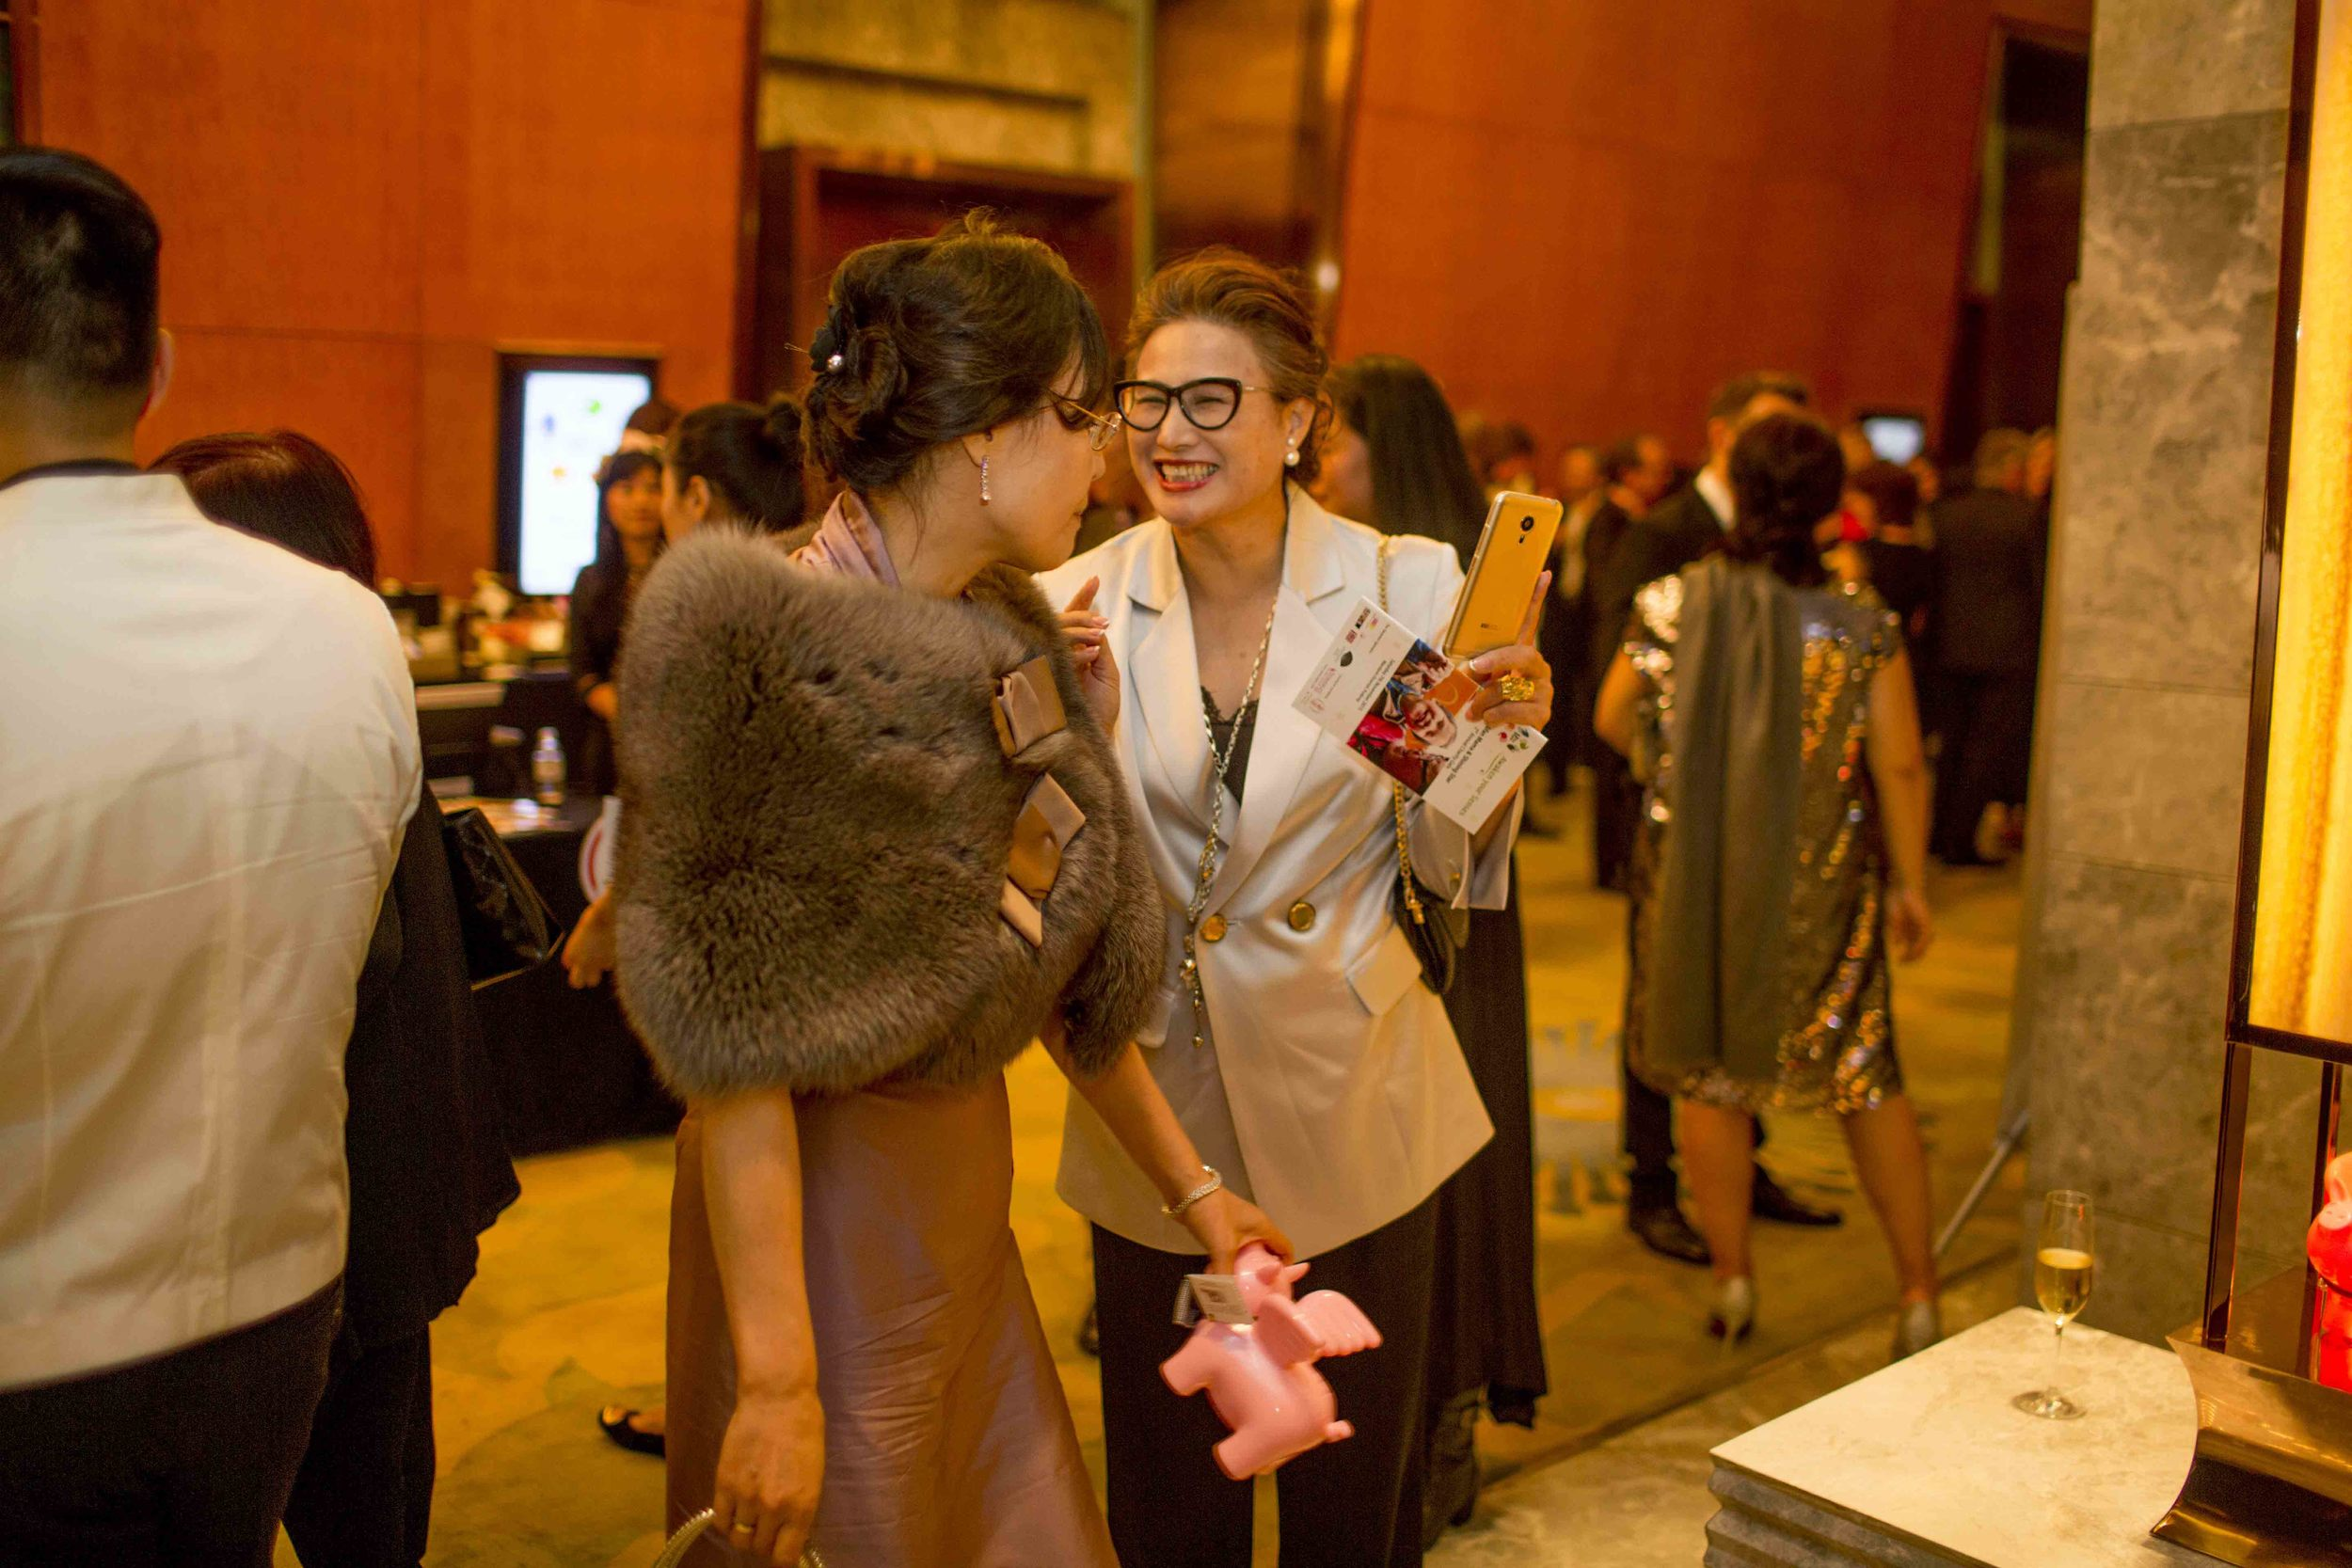 Wu Ching Ju delighted after the successful auction of one of her works - another operation made possible.